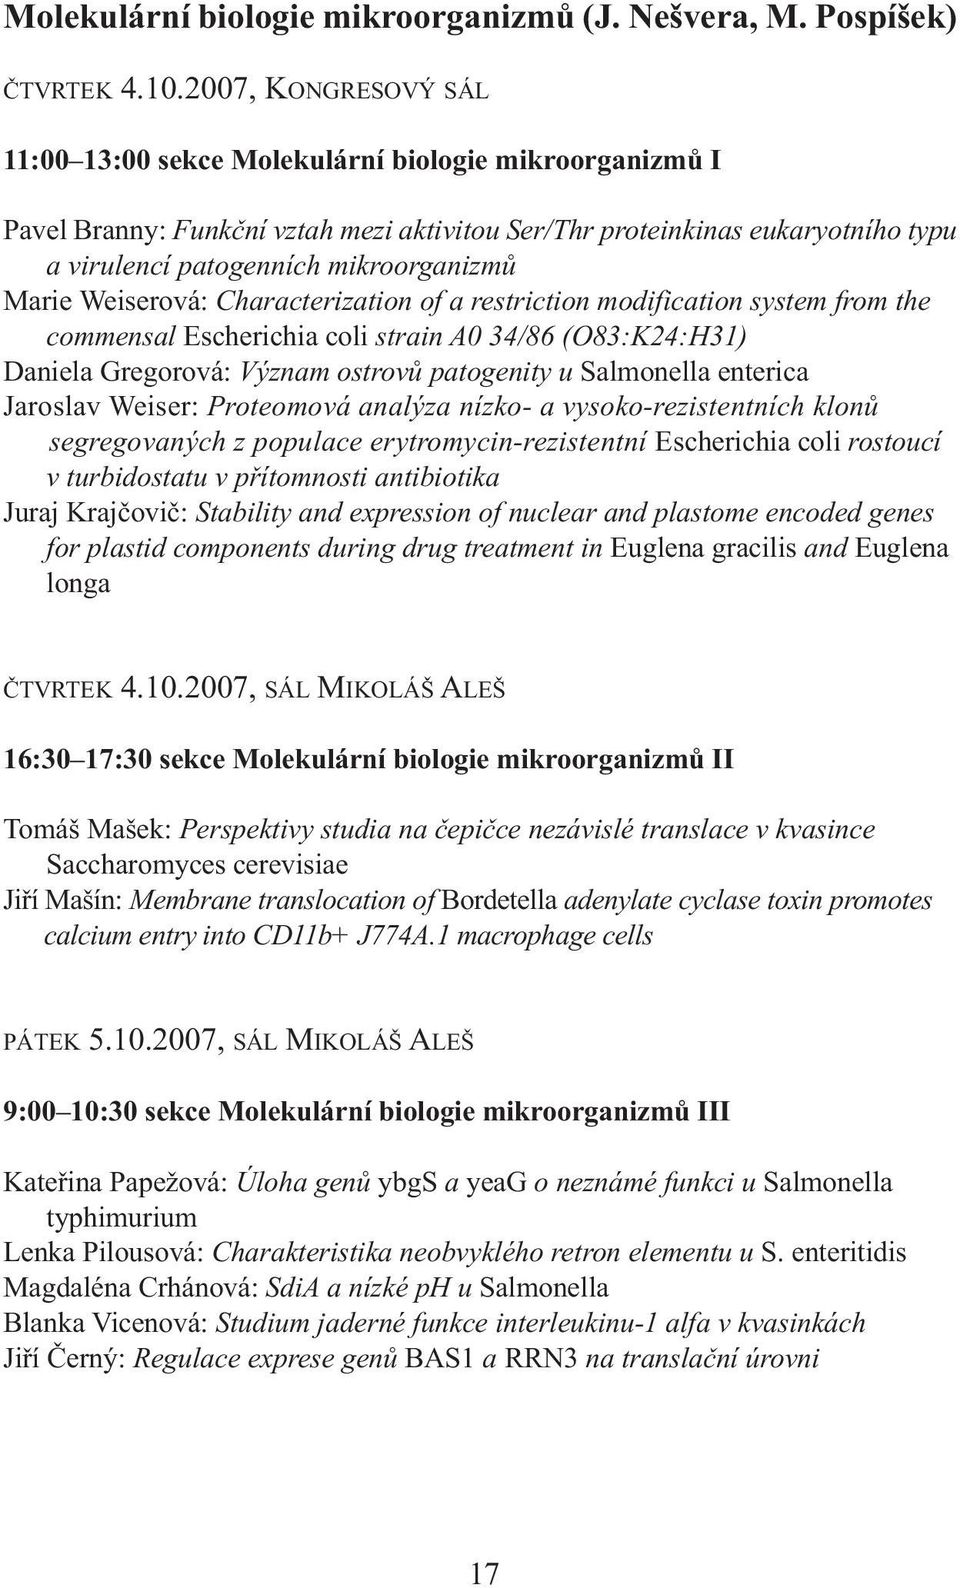 Marie Weiserová: Characterization of a restriction modification system from the commensal Escherichia coli strain A0 34/86 (O83:K24:H31) Daniela Gregorová: Význam ostrovů patogenity u Salmonella